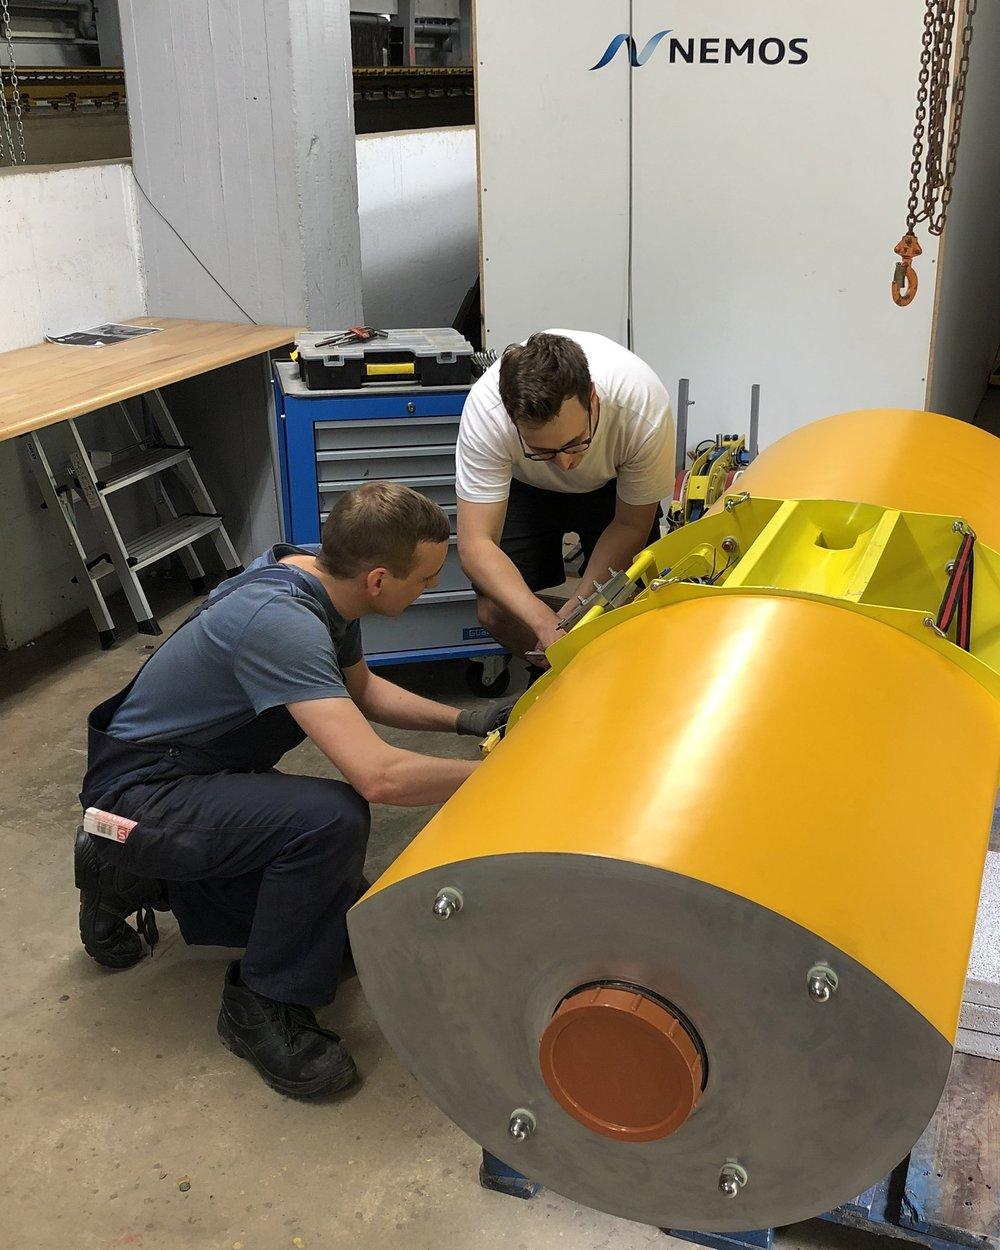 - After intense weeks of development and manufacturing, the NEMOS team successfully tested the first scaled model of the next generation wave energy converter (WEC) under realistic environmental conditions. This model features a 1:3 scale relating to the planned NEMOS Ostend WEC. After initial tank tests at the DST Duisburg the model was deployed at the NEMOS nearshore test site at Nissum Bredning in August.This next generation WEC features advanced solutions, especially for the integration of the power take-off (PTO) components. Here, several approaches were successfully developed and tested. These developments are showing that the new concept works without the tower infrastructure that was required for the previous design. Based on the knowledge gained out of the test campaigns in the tank in Duisburg as well as the nearshore tests in Denmark, the concept is now finalized for deployment in Ostend in larger scale.The NEMOS team is especially proud that the test campaign in Denmark worked out as a smooth out of the box run. Returning from the trip, the test crew reported that the setup functioned as planned in a plug-and-play manner. Without incidents, the required tests were performed with high efficiency within a few days.